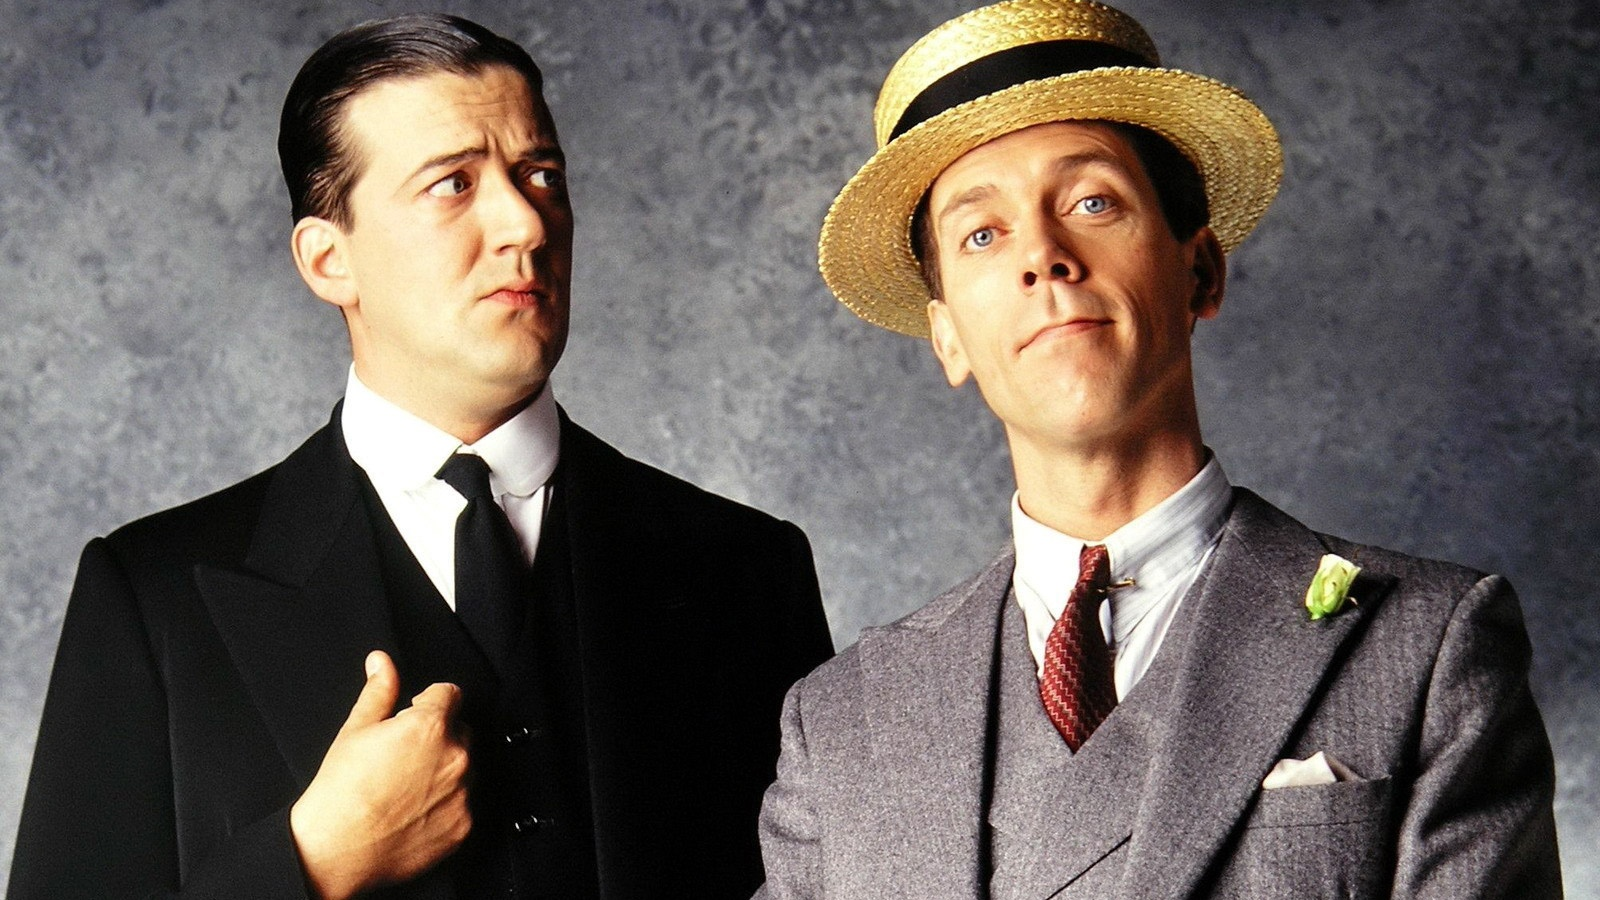 Дживс и Вустер/Jeeves and Wooster background